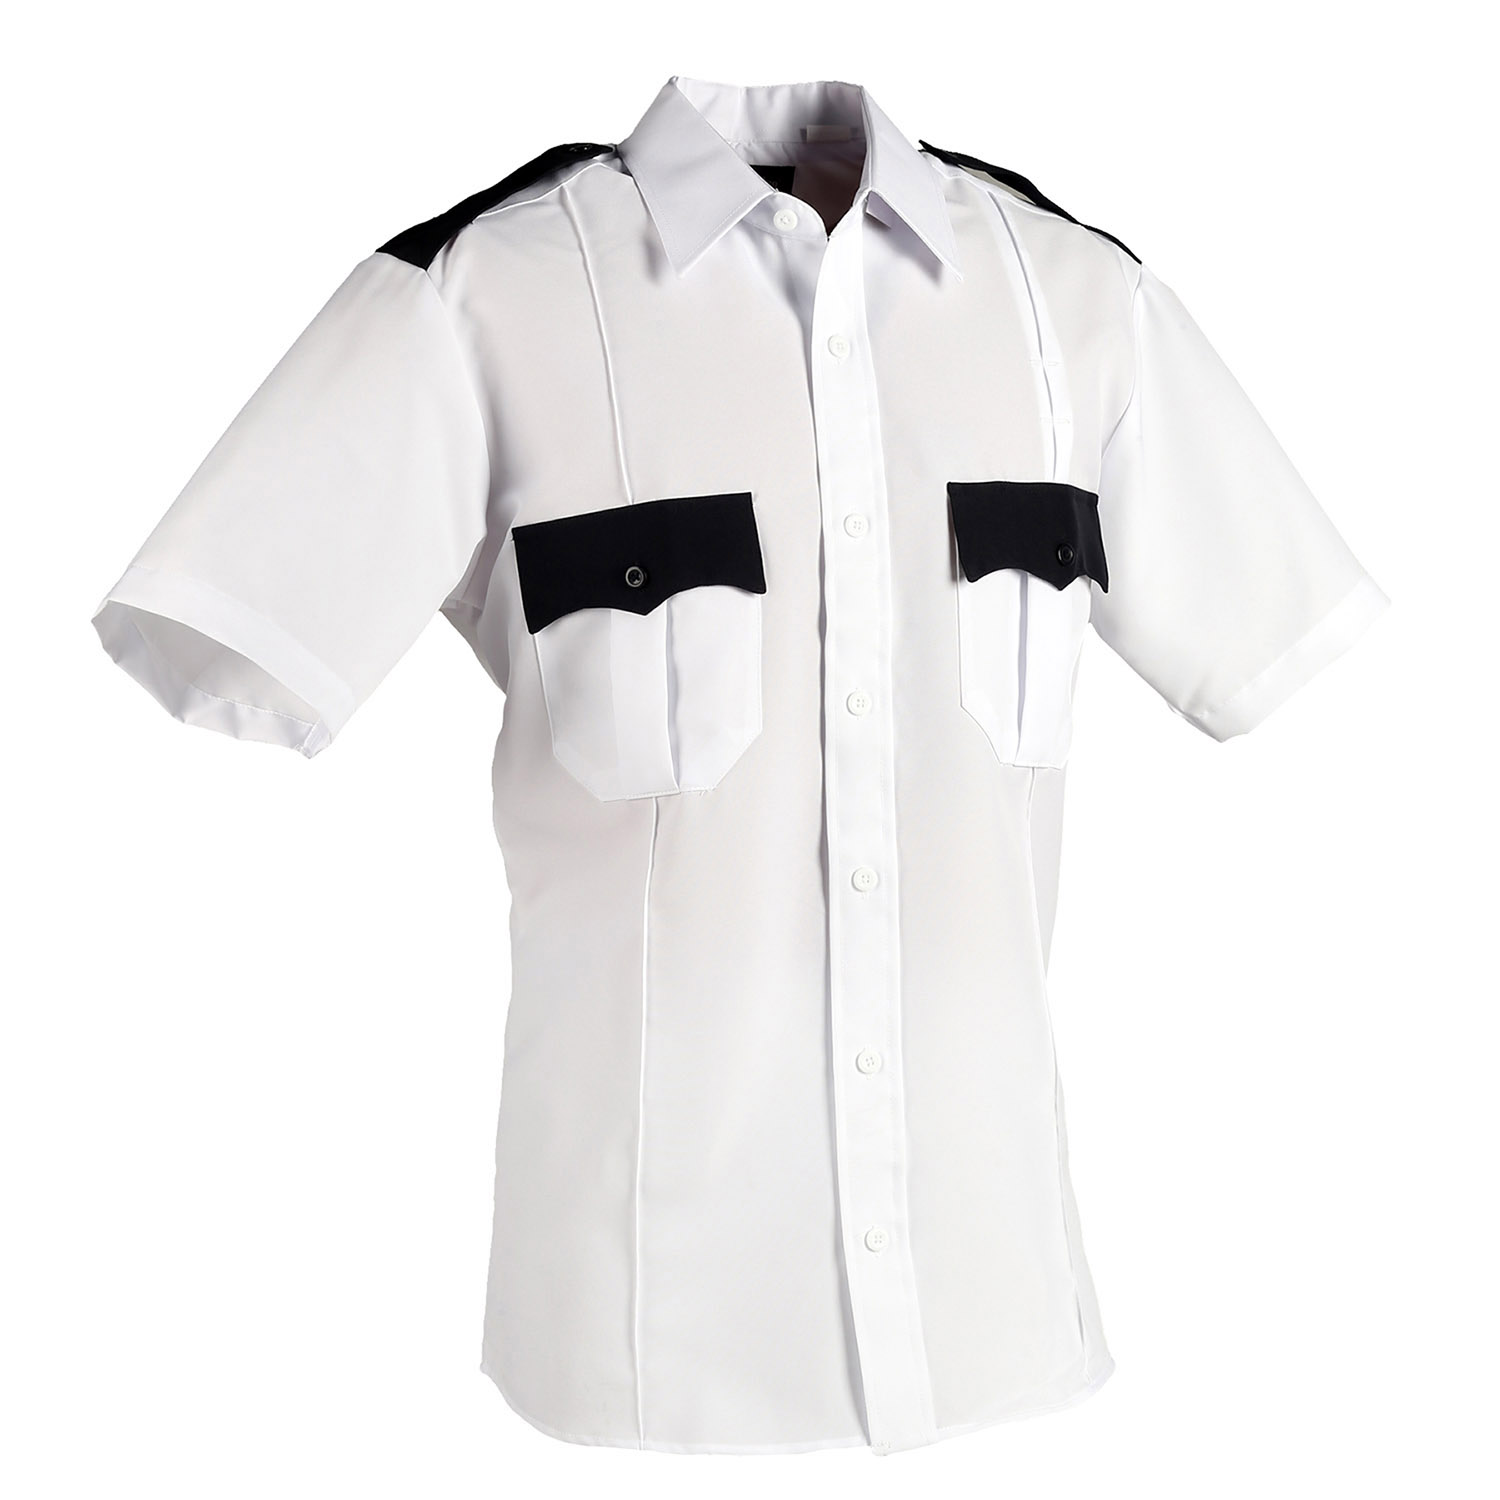 LawPro Polyester Two-Tone Short Sleeve Shirt